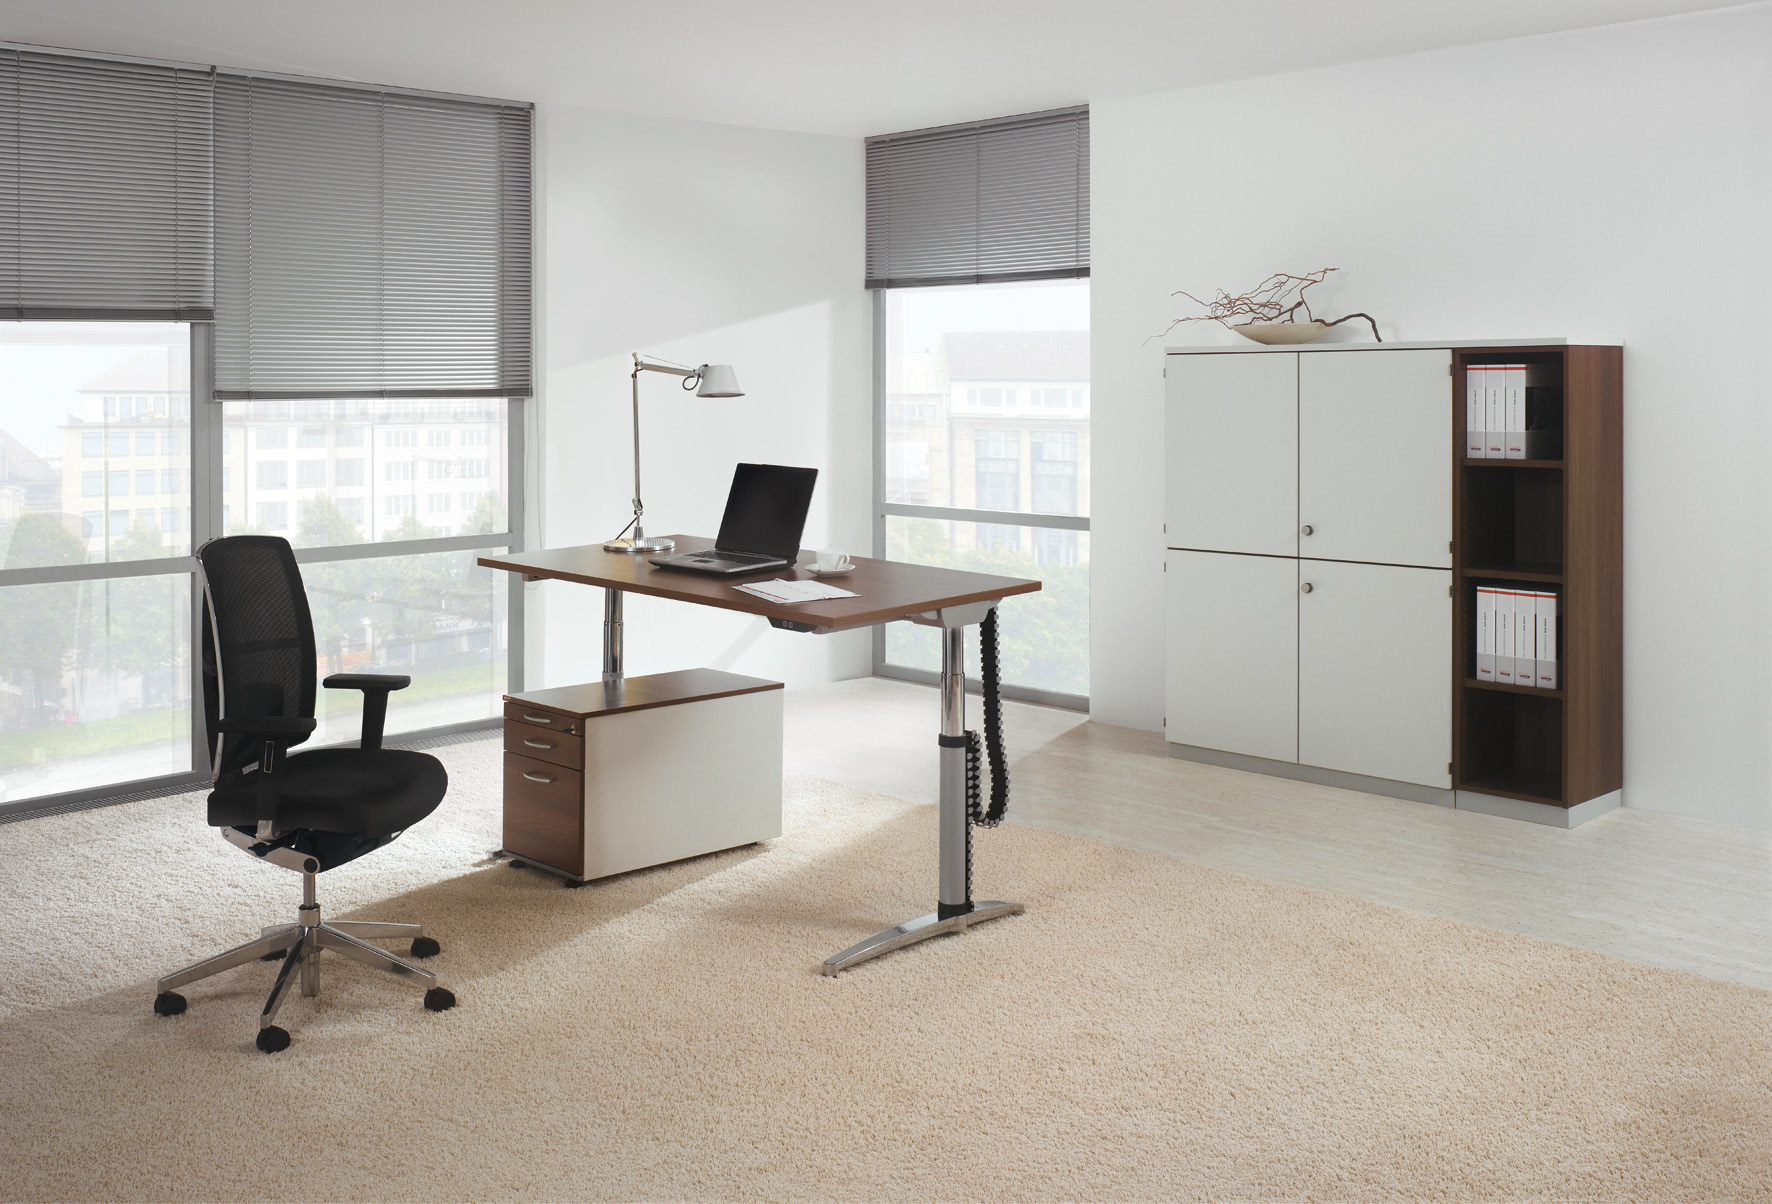 cool modern office chairs rose tarlow what truly defines a desk urban furniture height adjustable